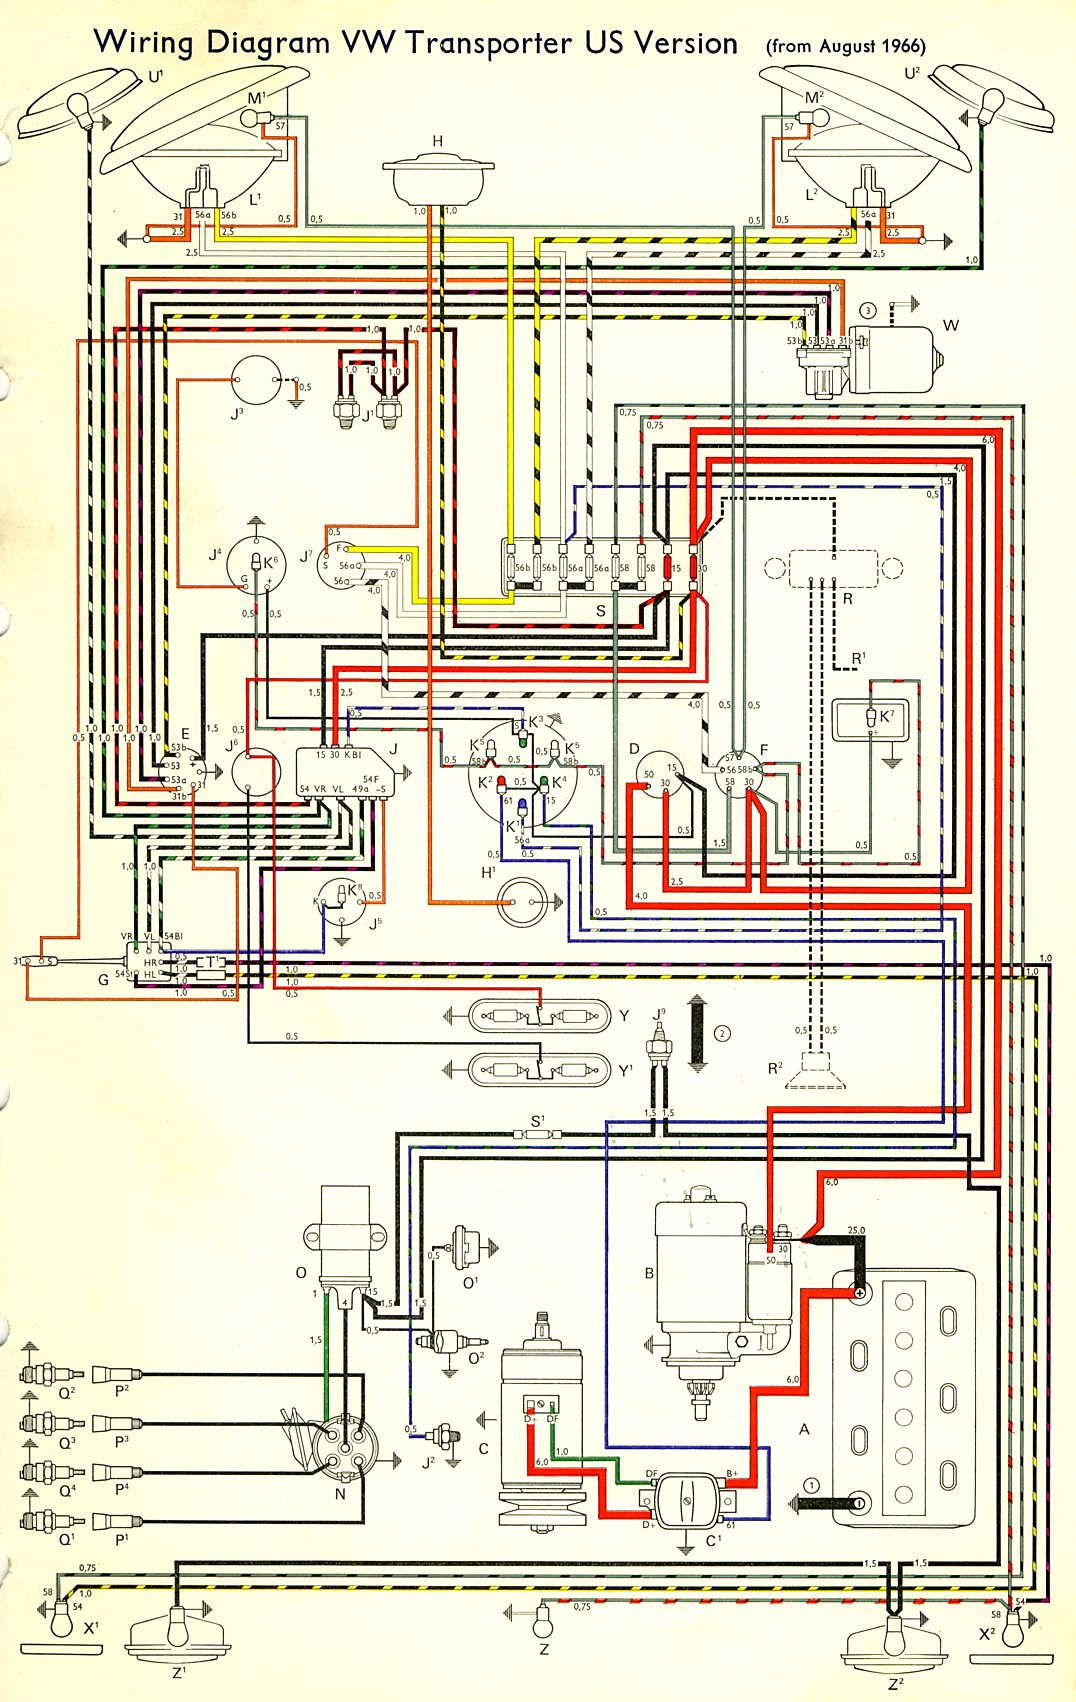 1970 Vw Coil Wiring Just Data Mustang To Fuse Box Another Diagrams U2022 Rh Benpaterson Co Uk Kit Car Diagram Bug